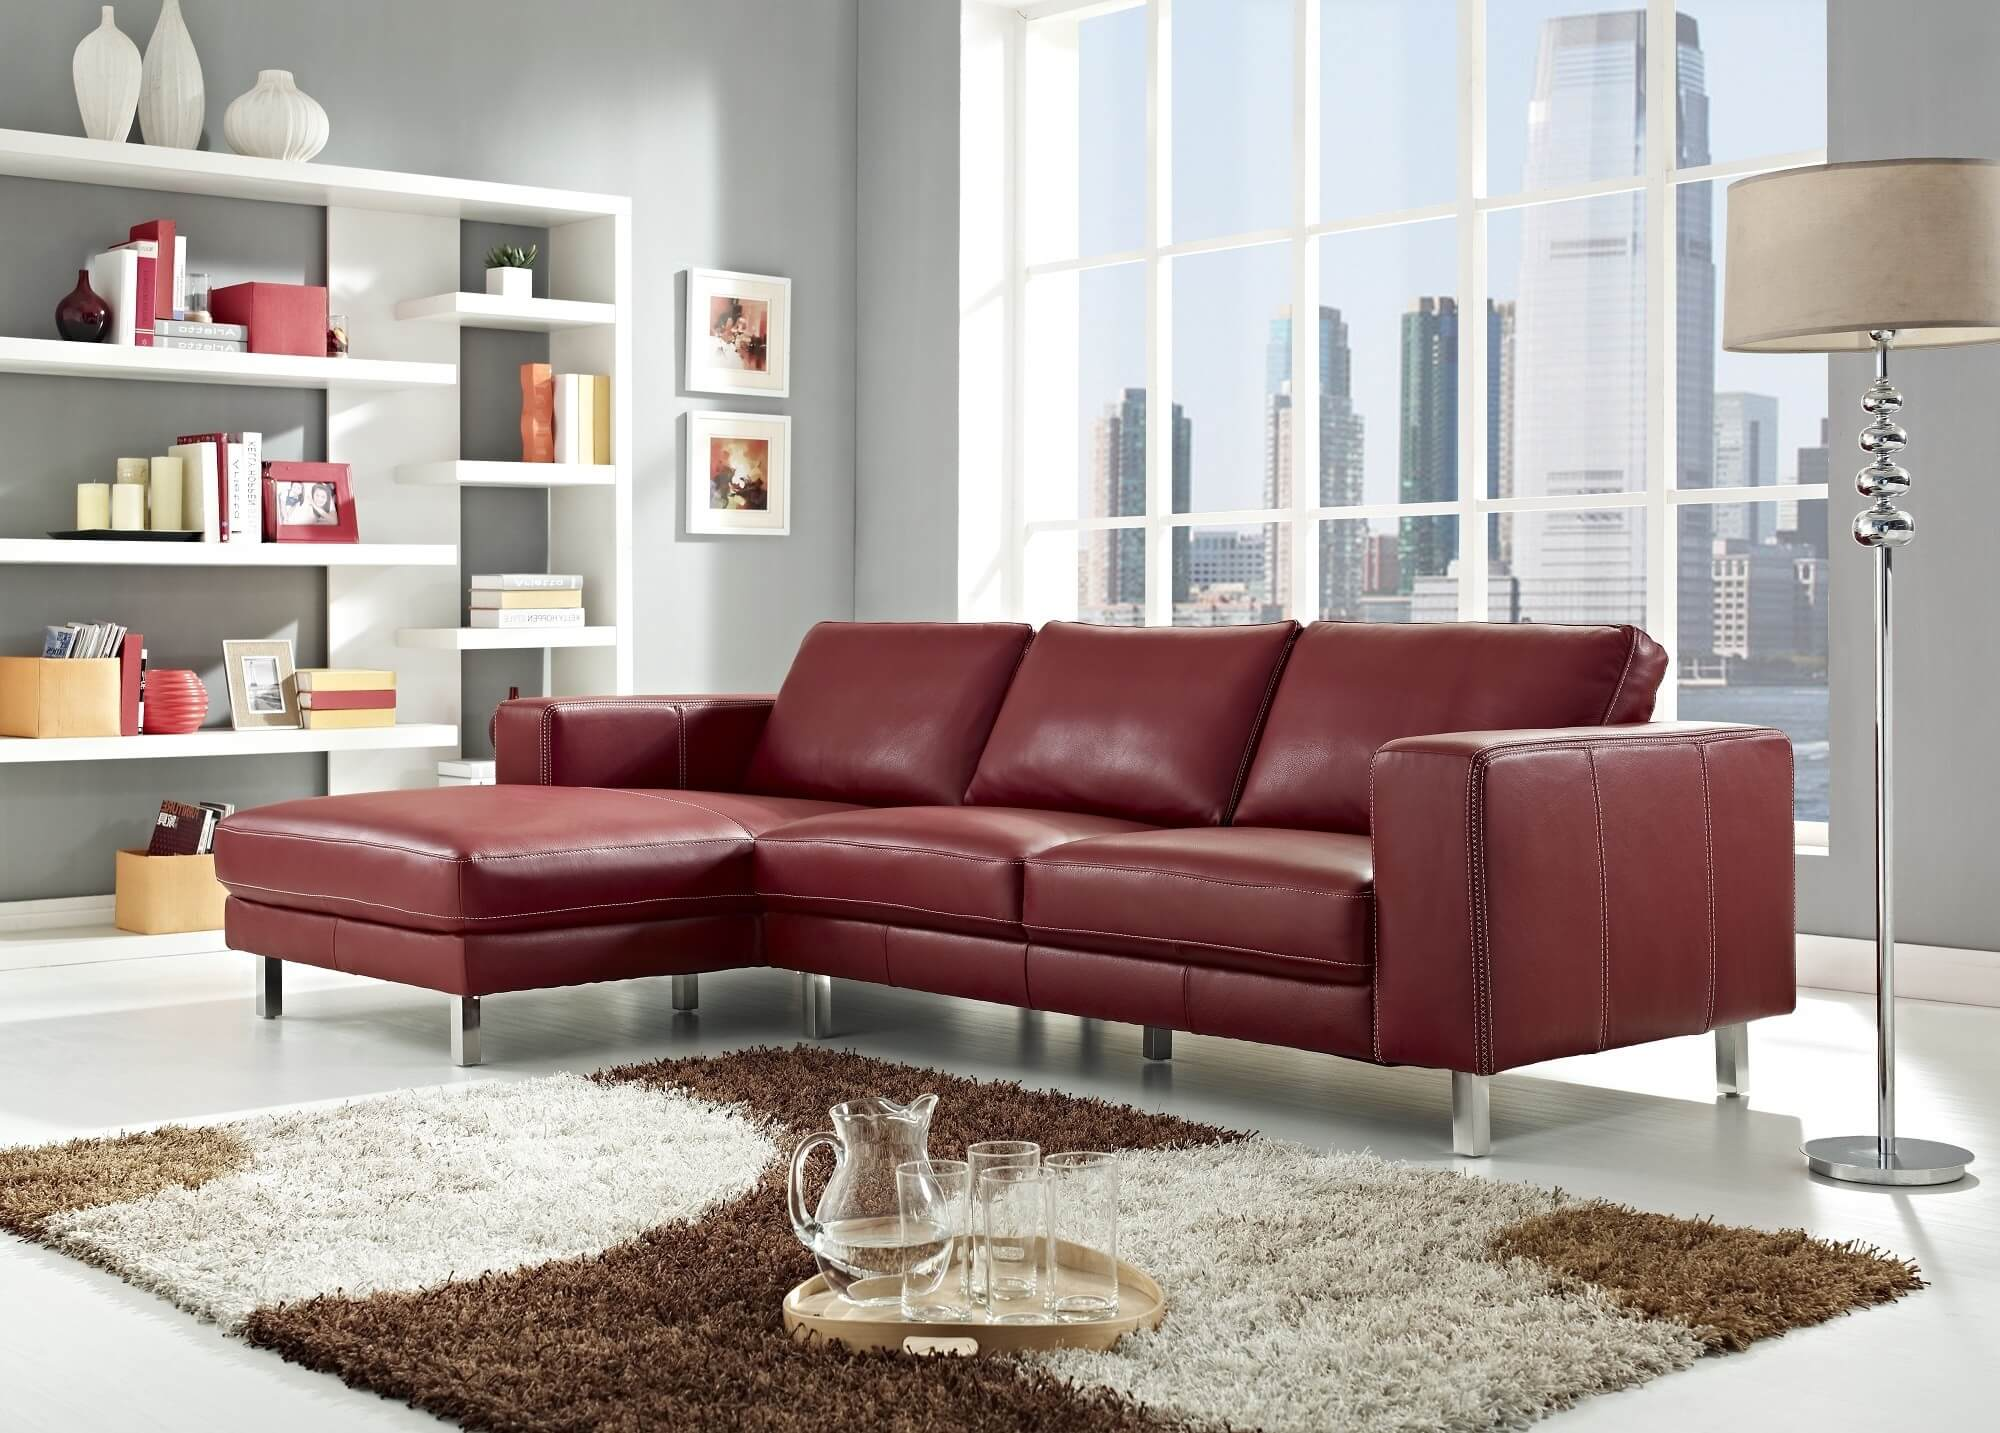 20 Types of Sofas & Couches Explained WITH PICTURES